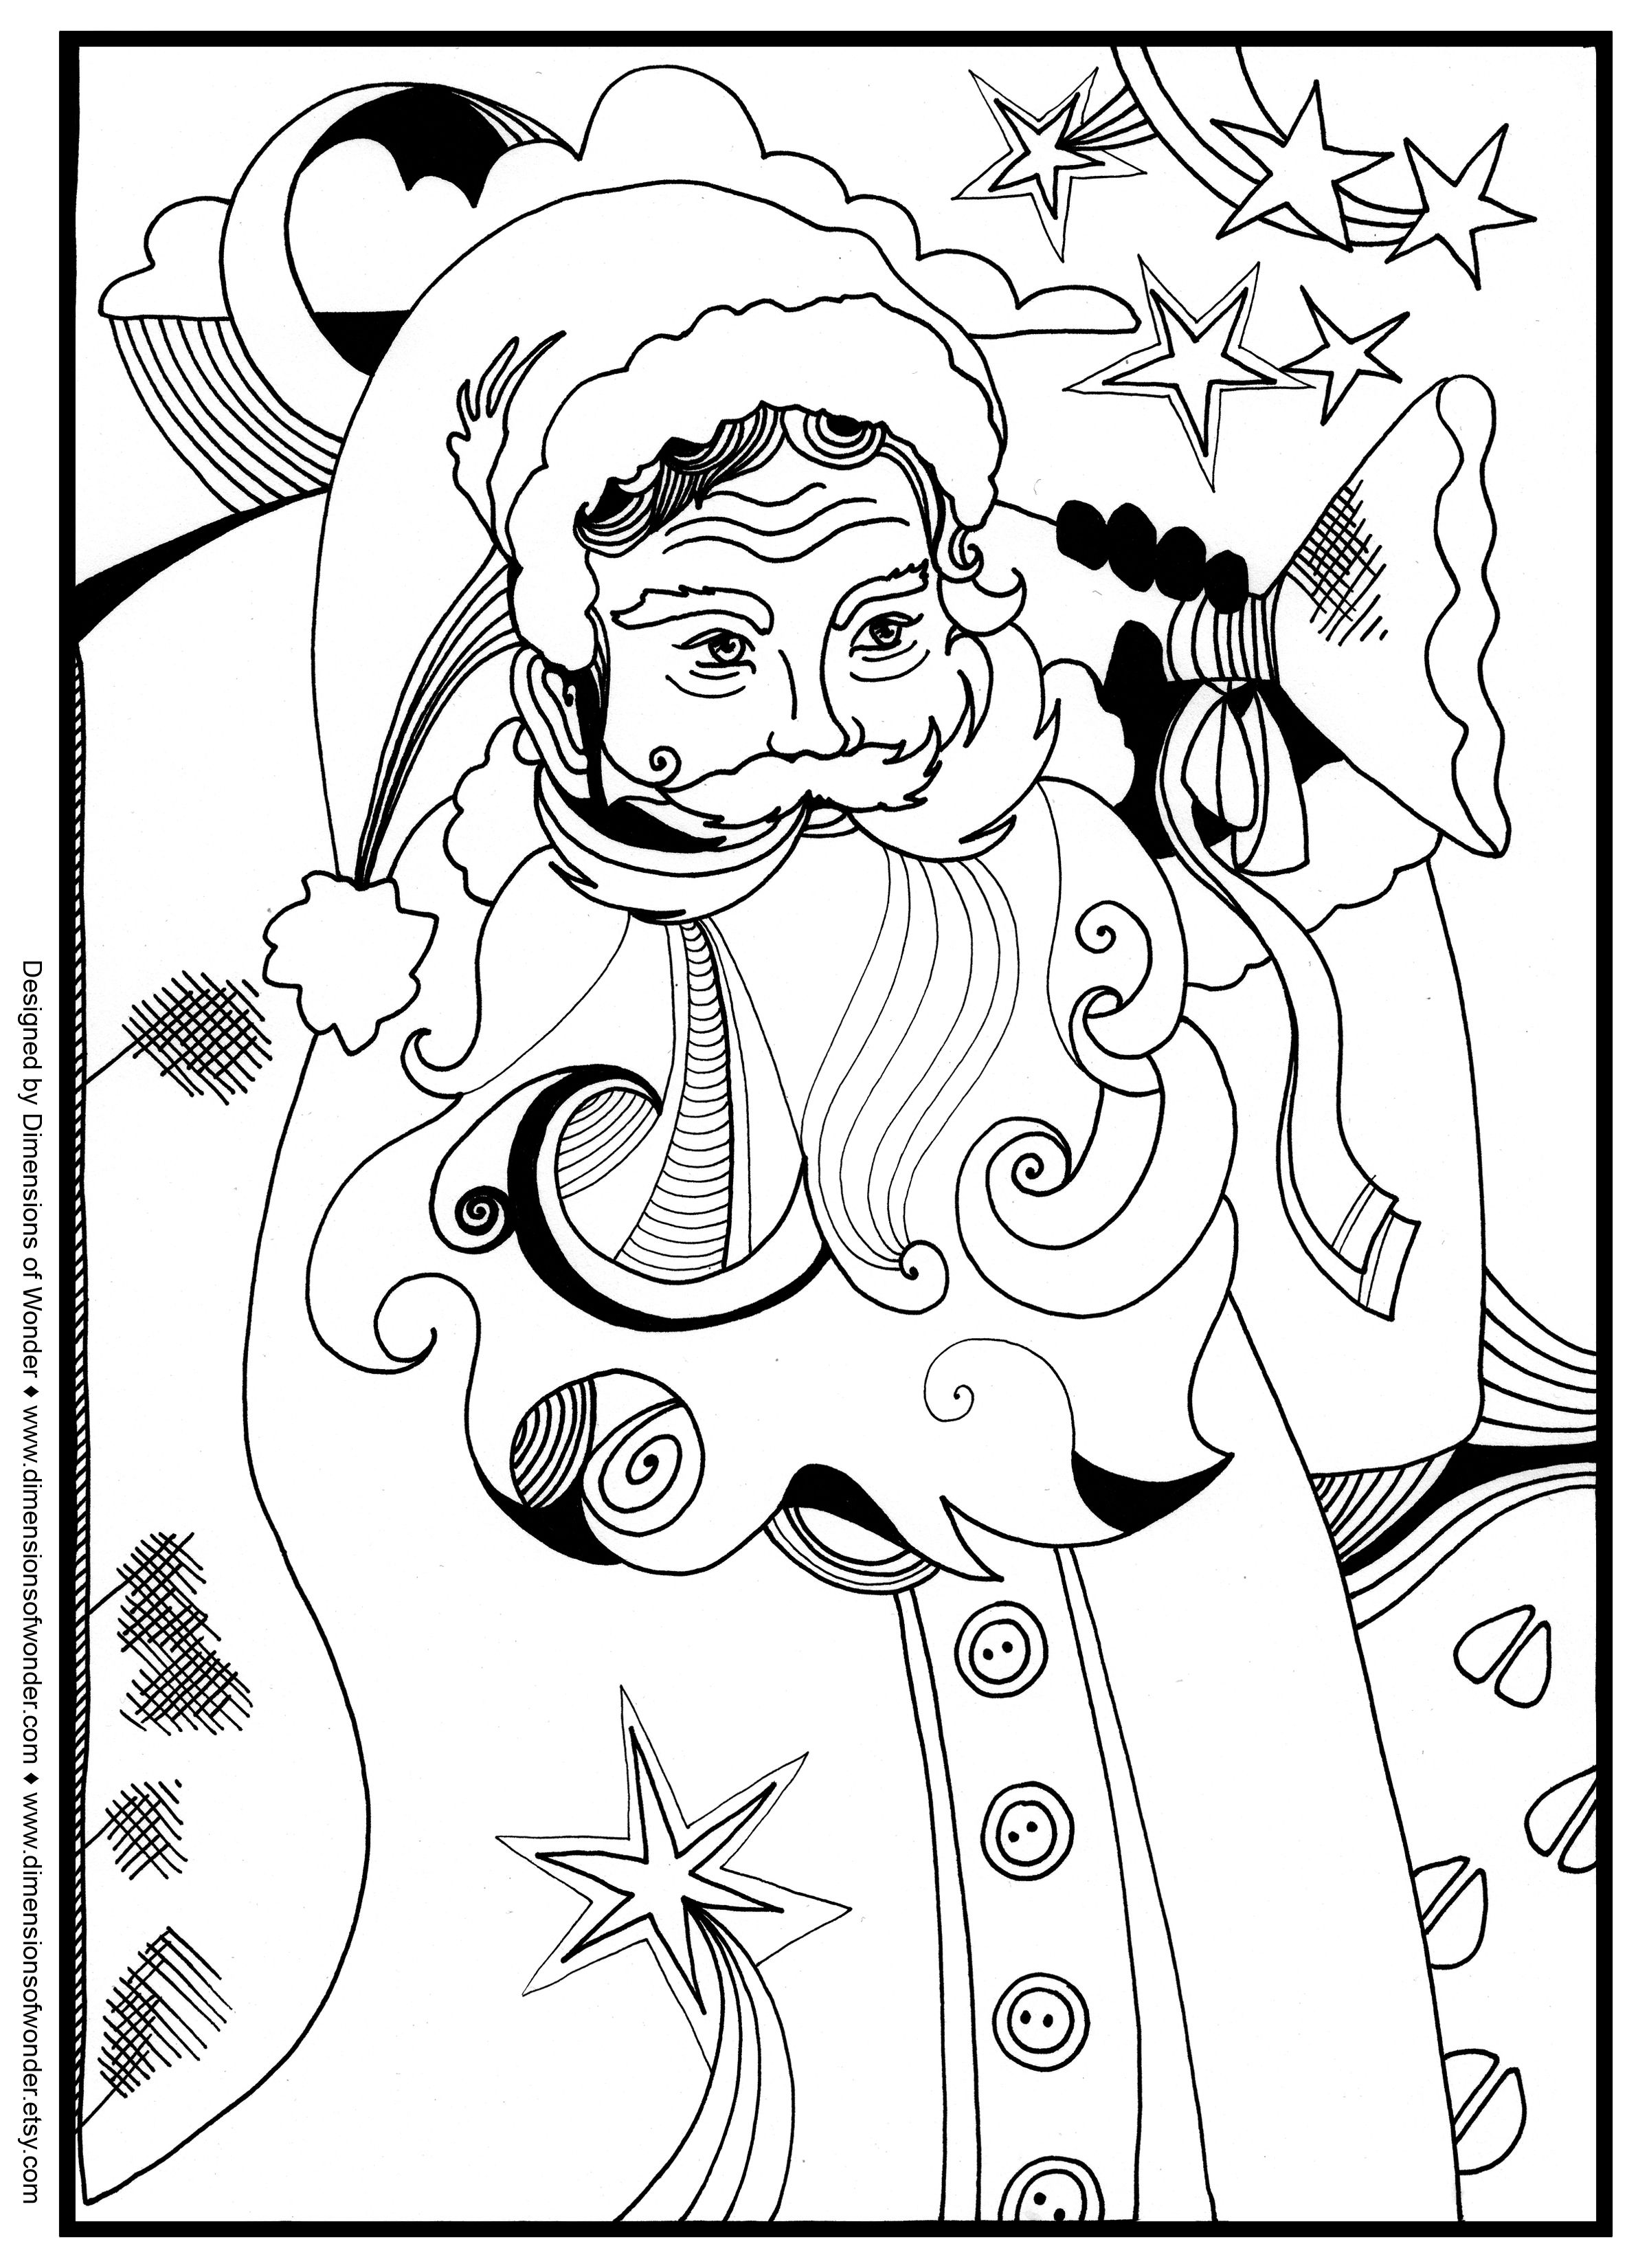 Santa Face Coloring Sheet With Christmas Around The World Pages Kidsfreecoloring Net